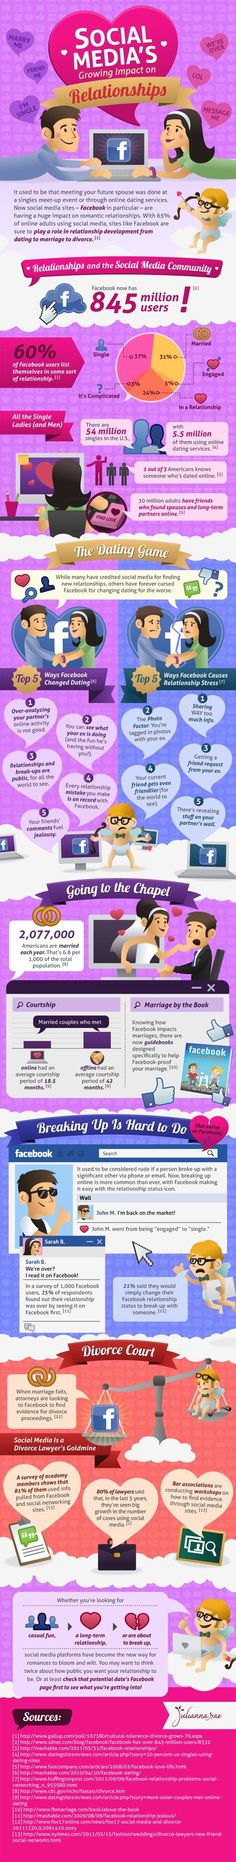 Social Media's Growing Impact on Relationships [INFOGRAPHICS]